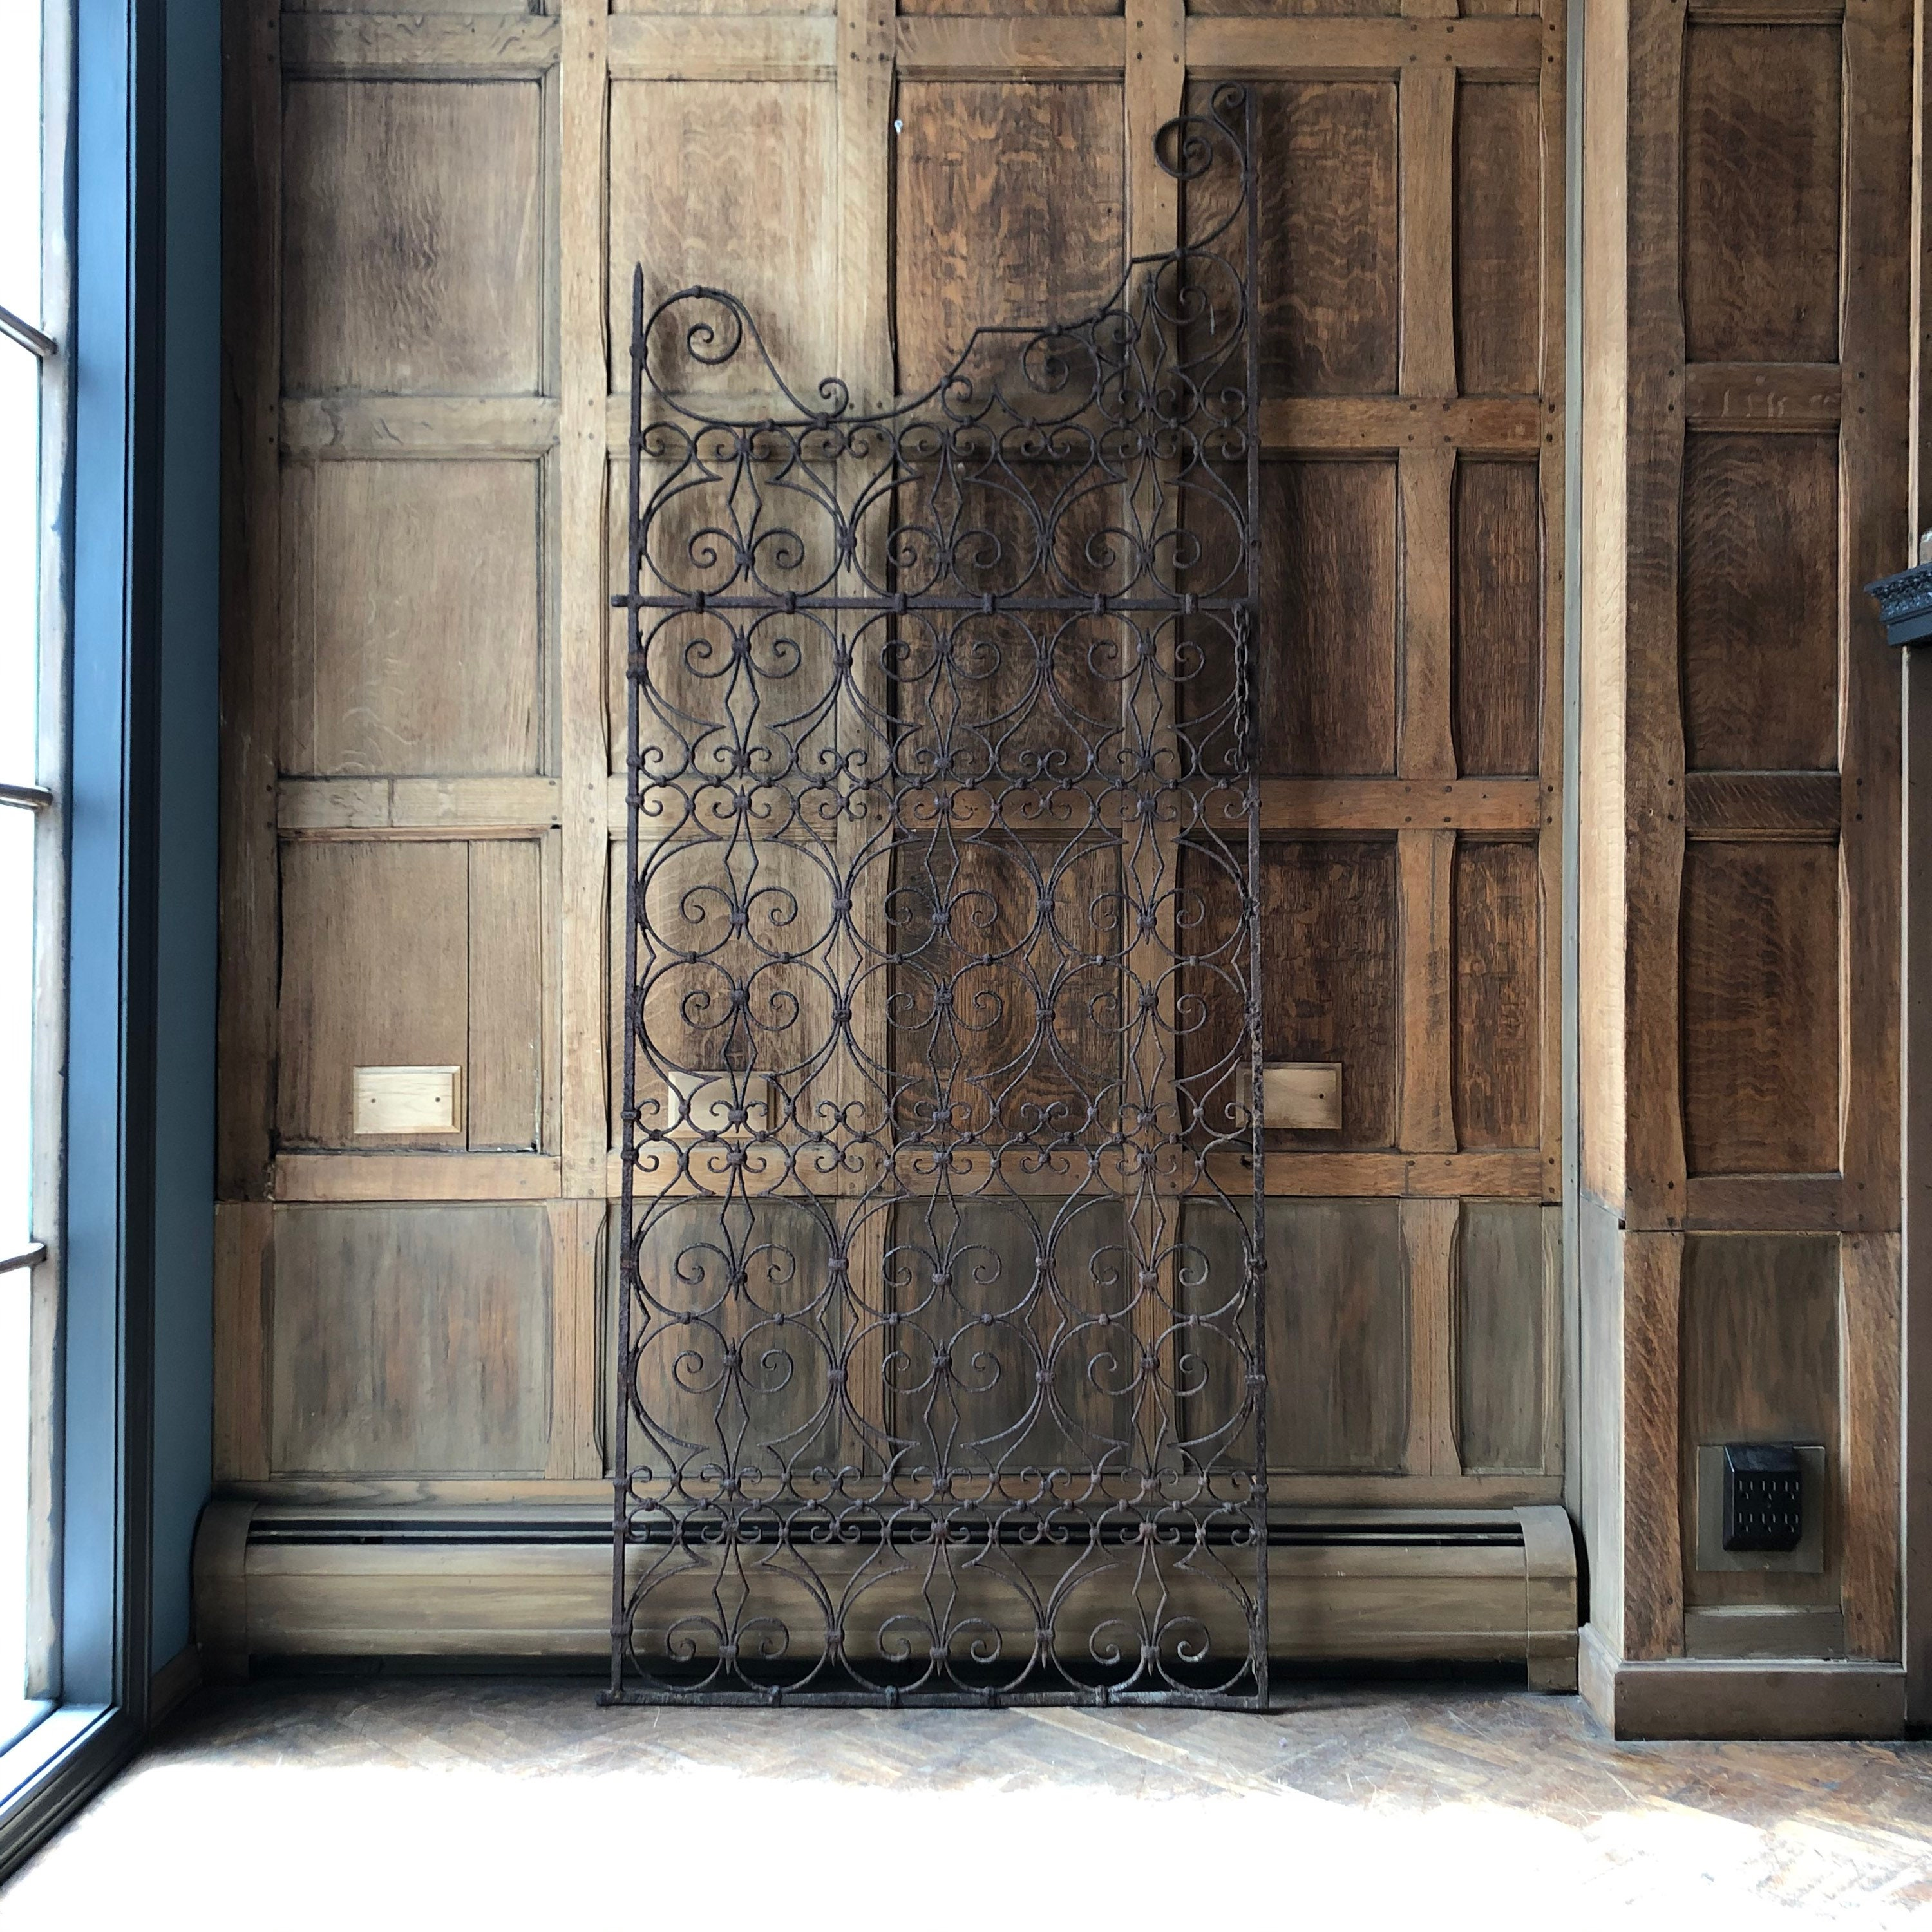 RESERVED - Unmatched PAIR of Antique Wrought Iron Gate ...